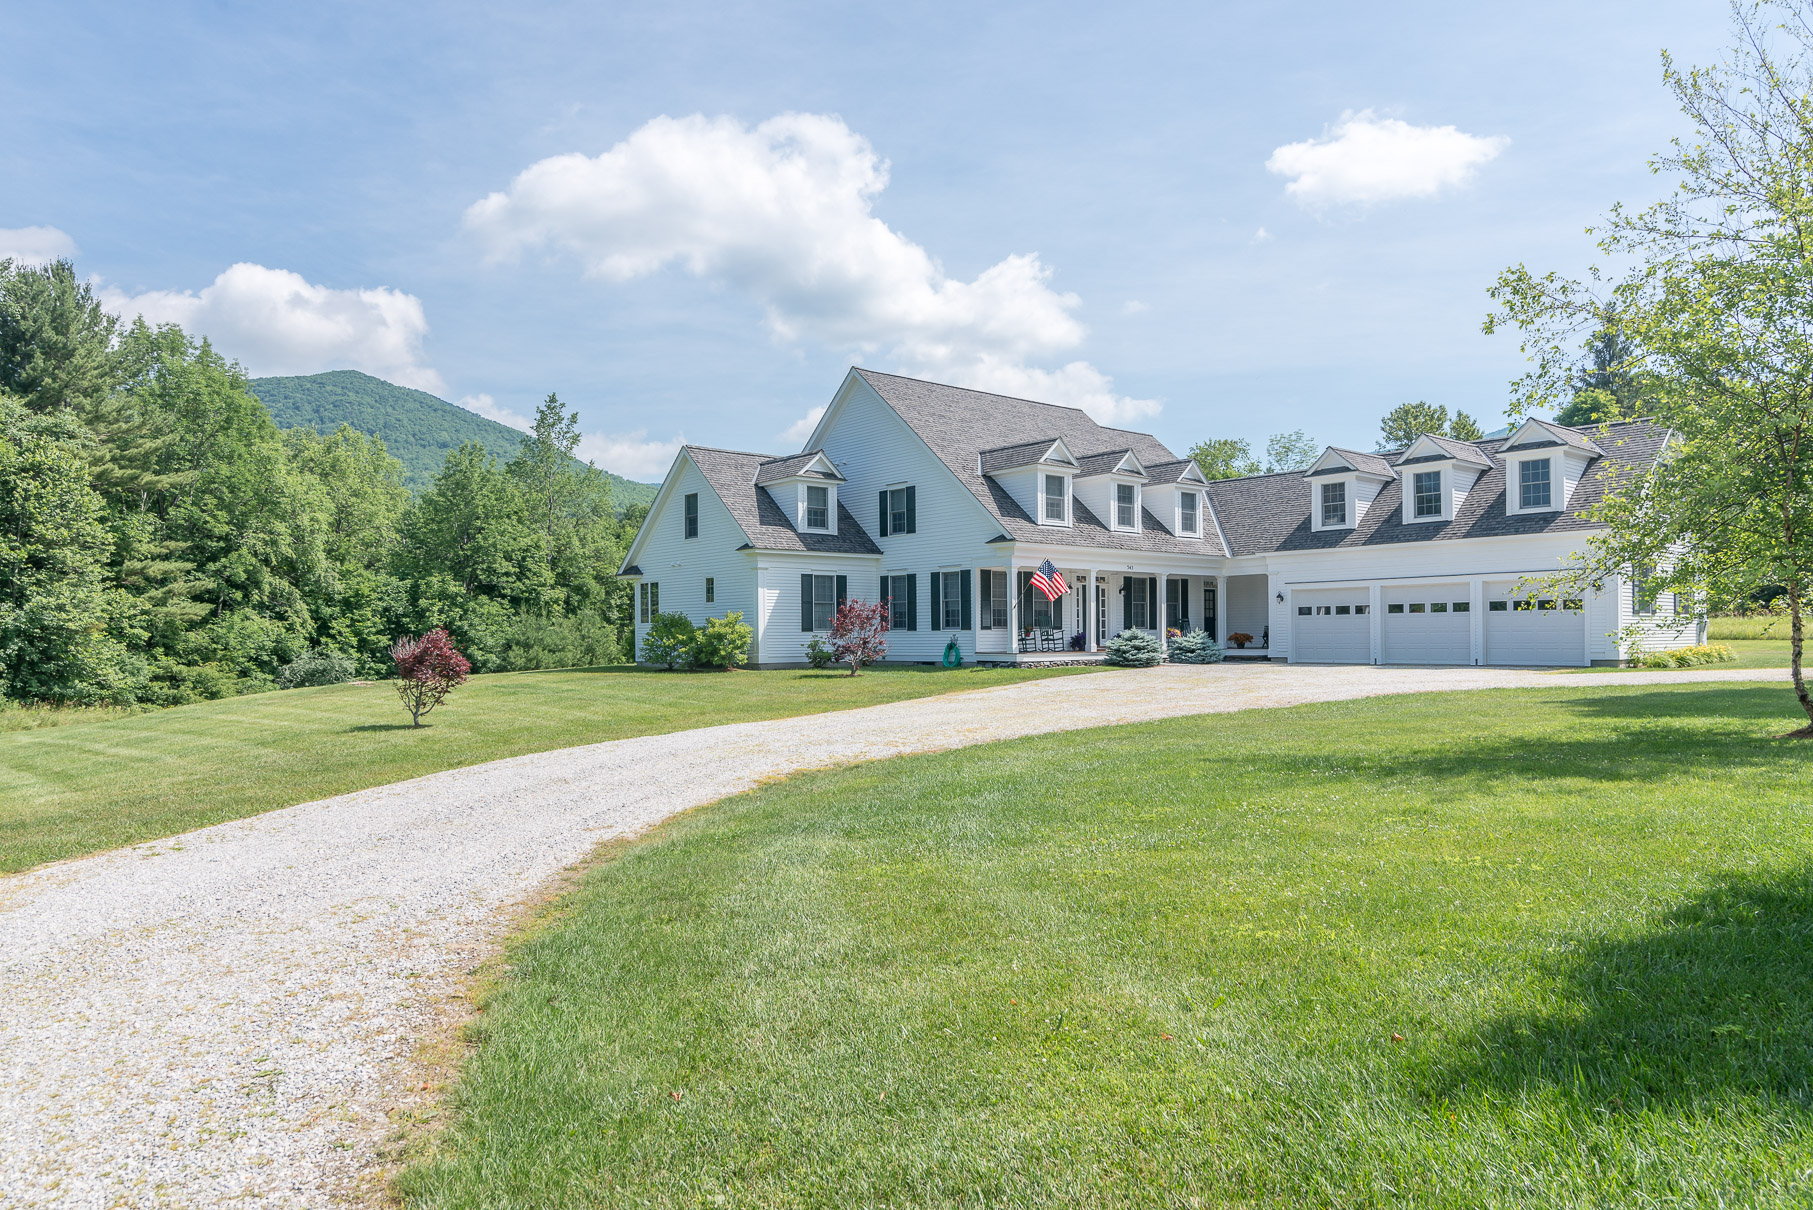 Single Family Home for Sale at 543 Lower Hollow Road, Dorset 543 Lower Hollow Rd Dorset, Vermont, 05251 United States